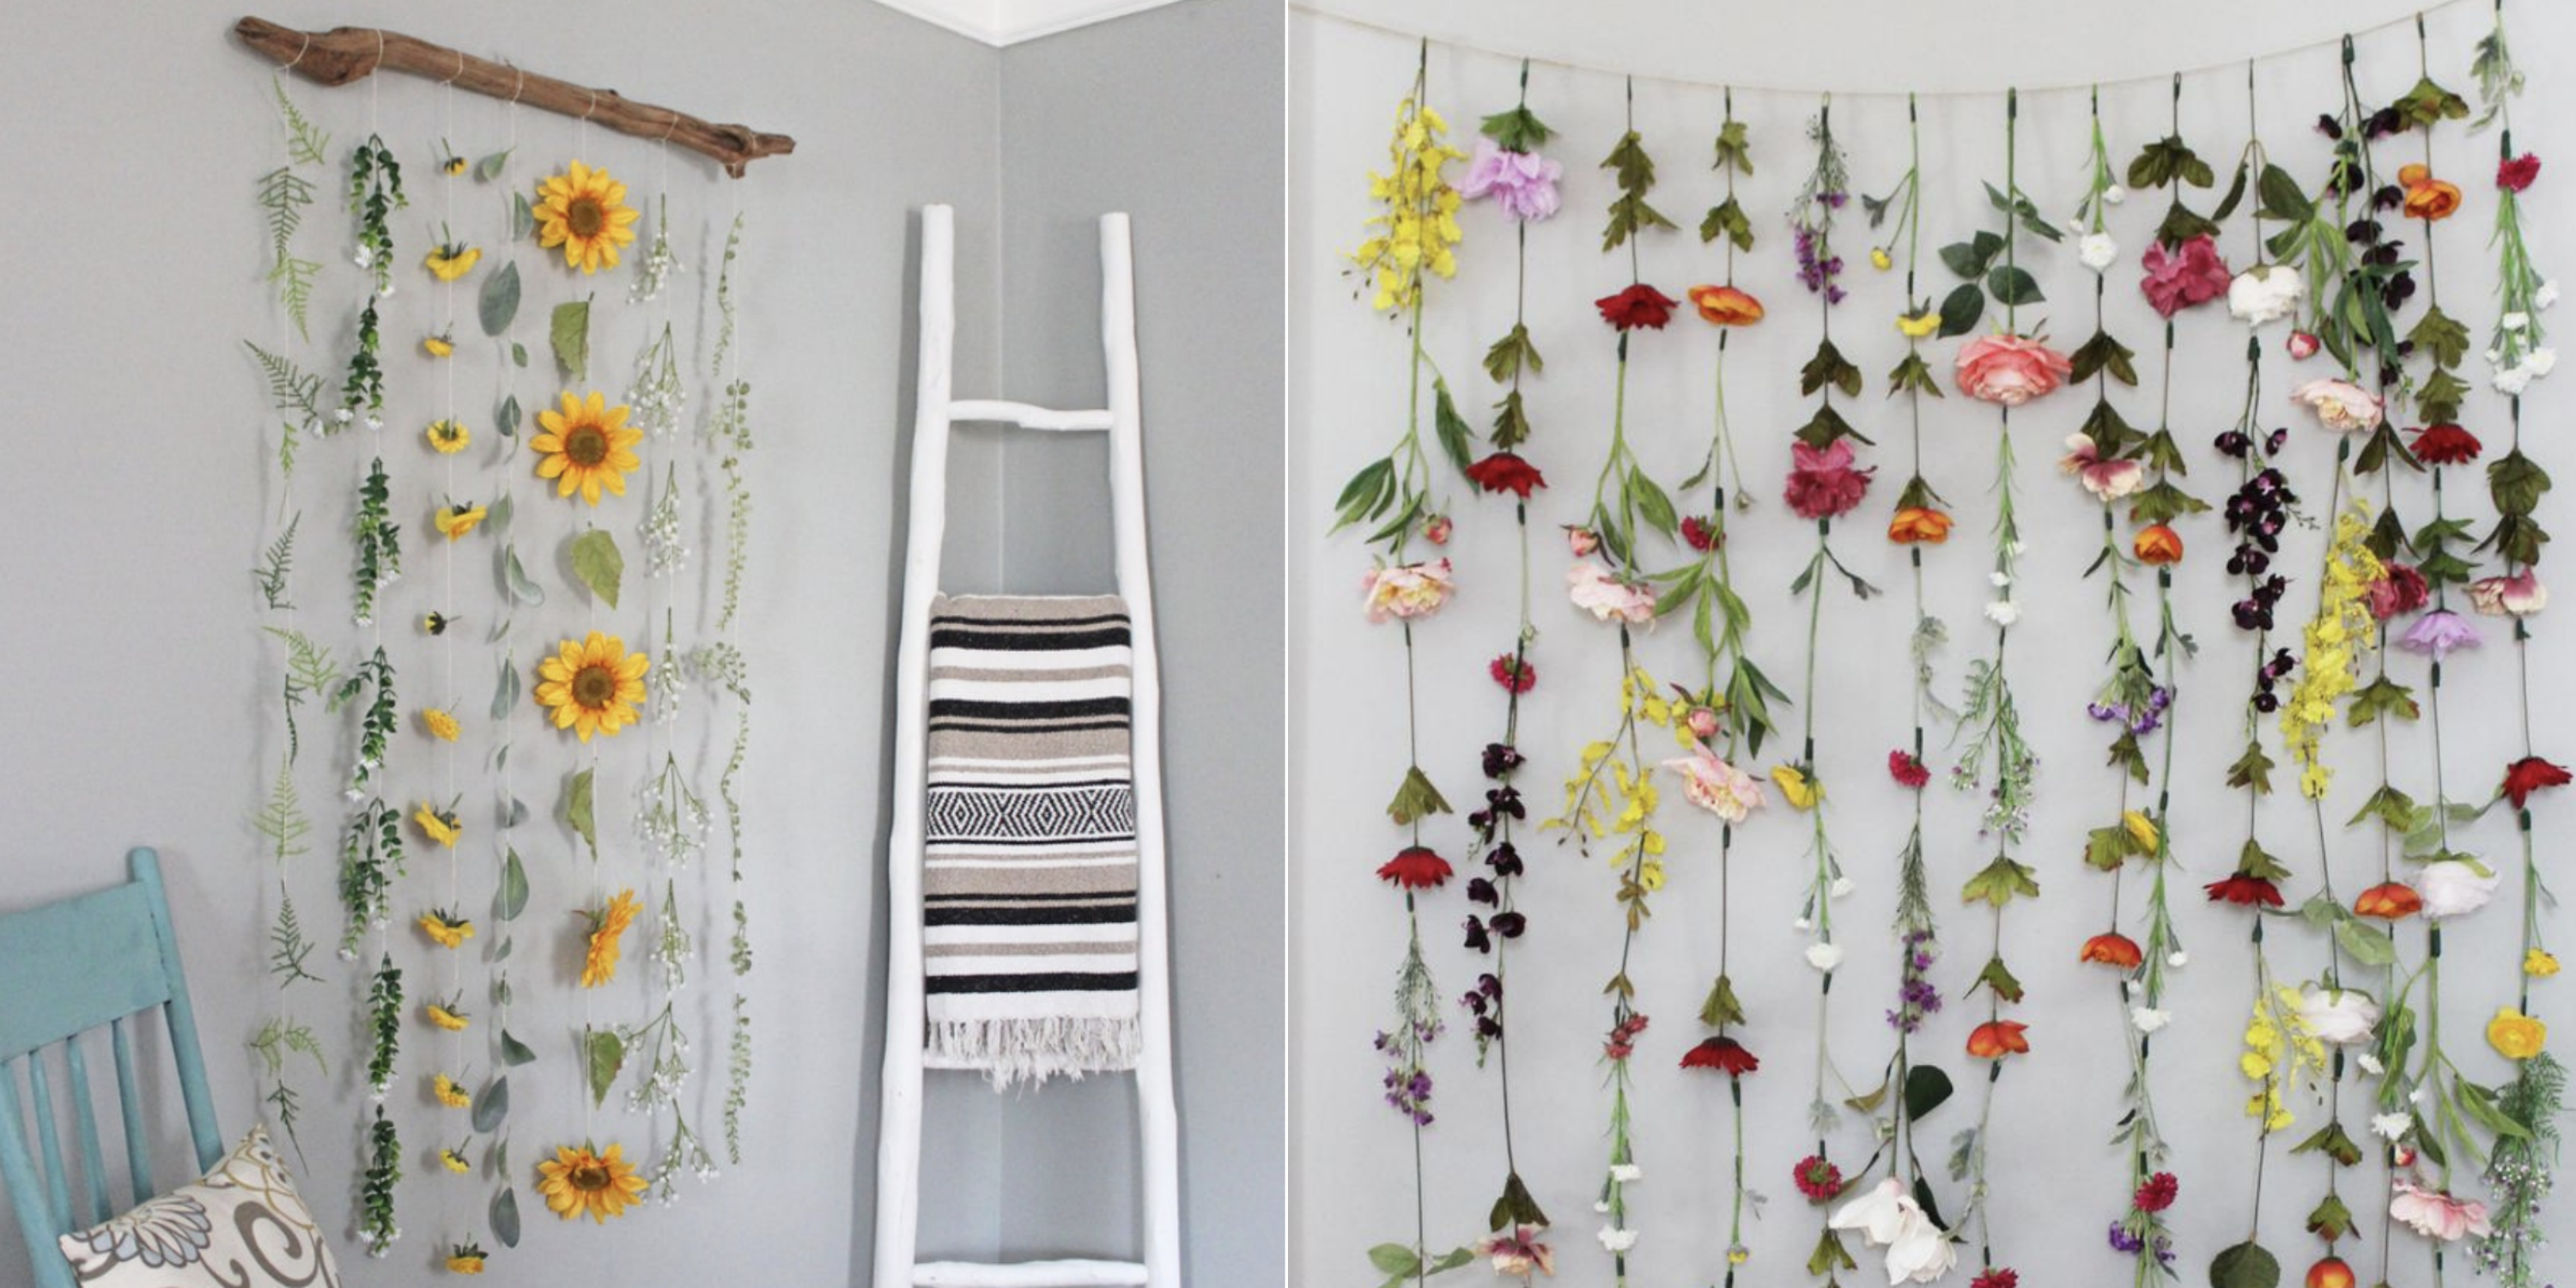 Flower Wall Garlands Are Trending On Pinterest And You Can Diy Your Own